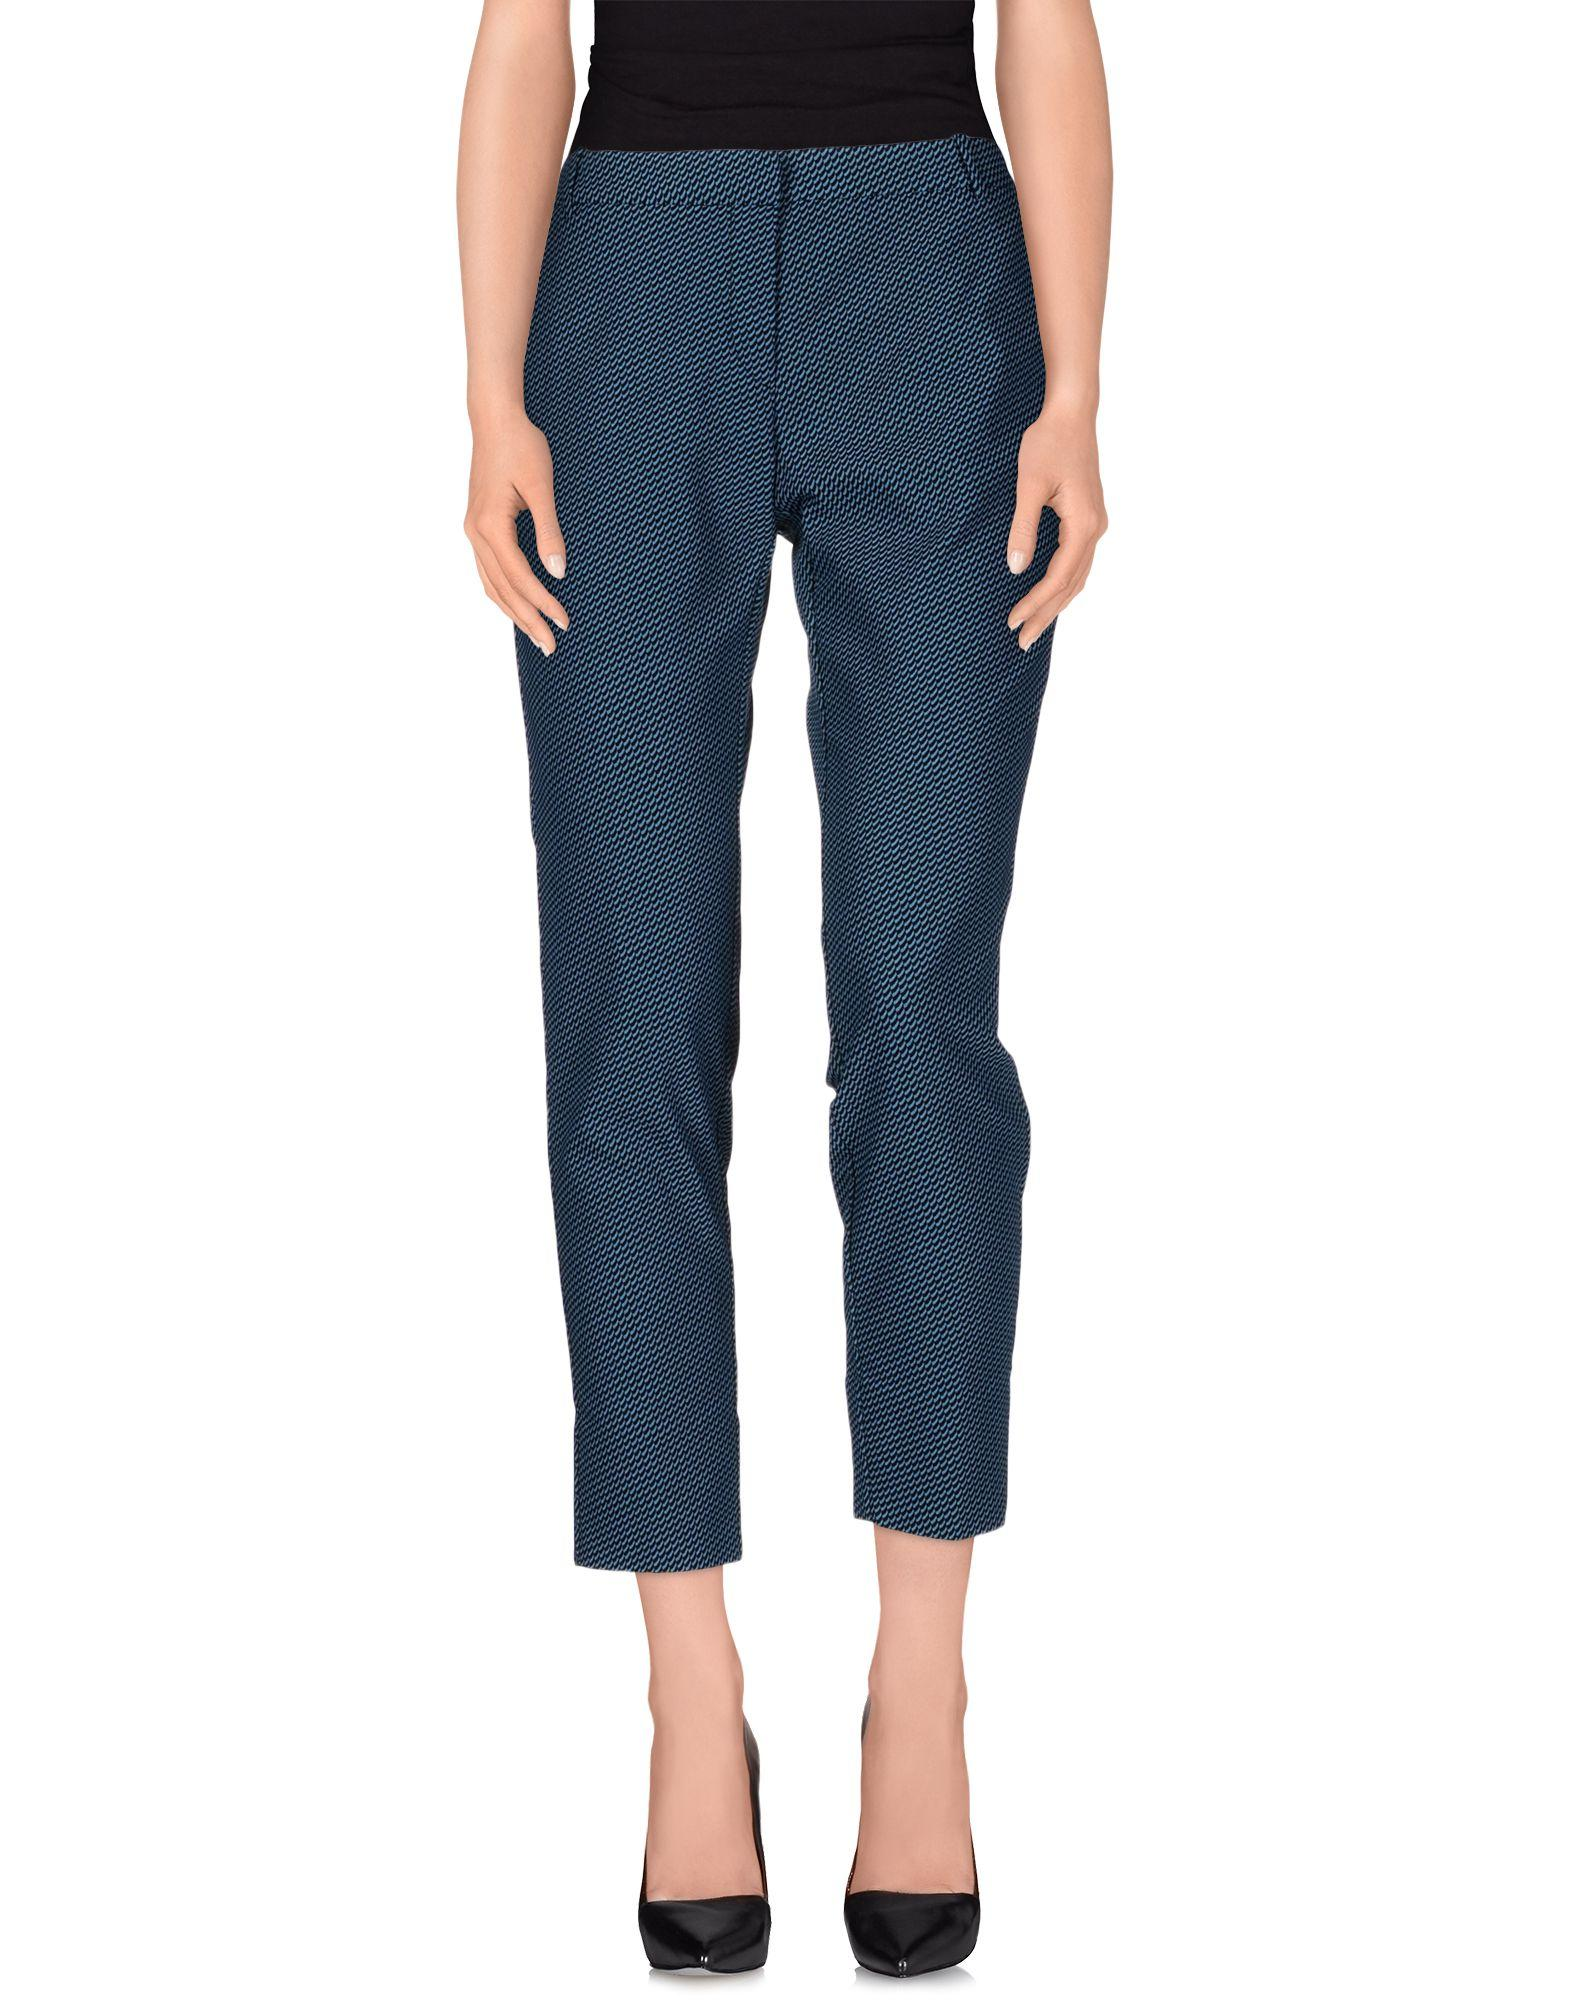 Teresa Dainelli Casual Pants In Slate Blue